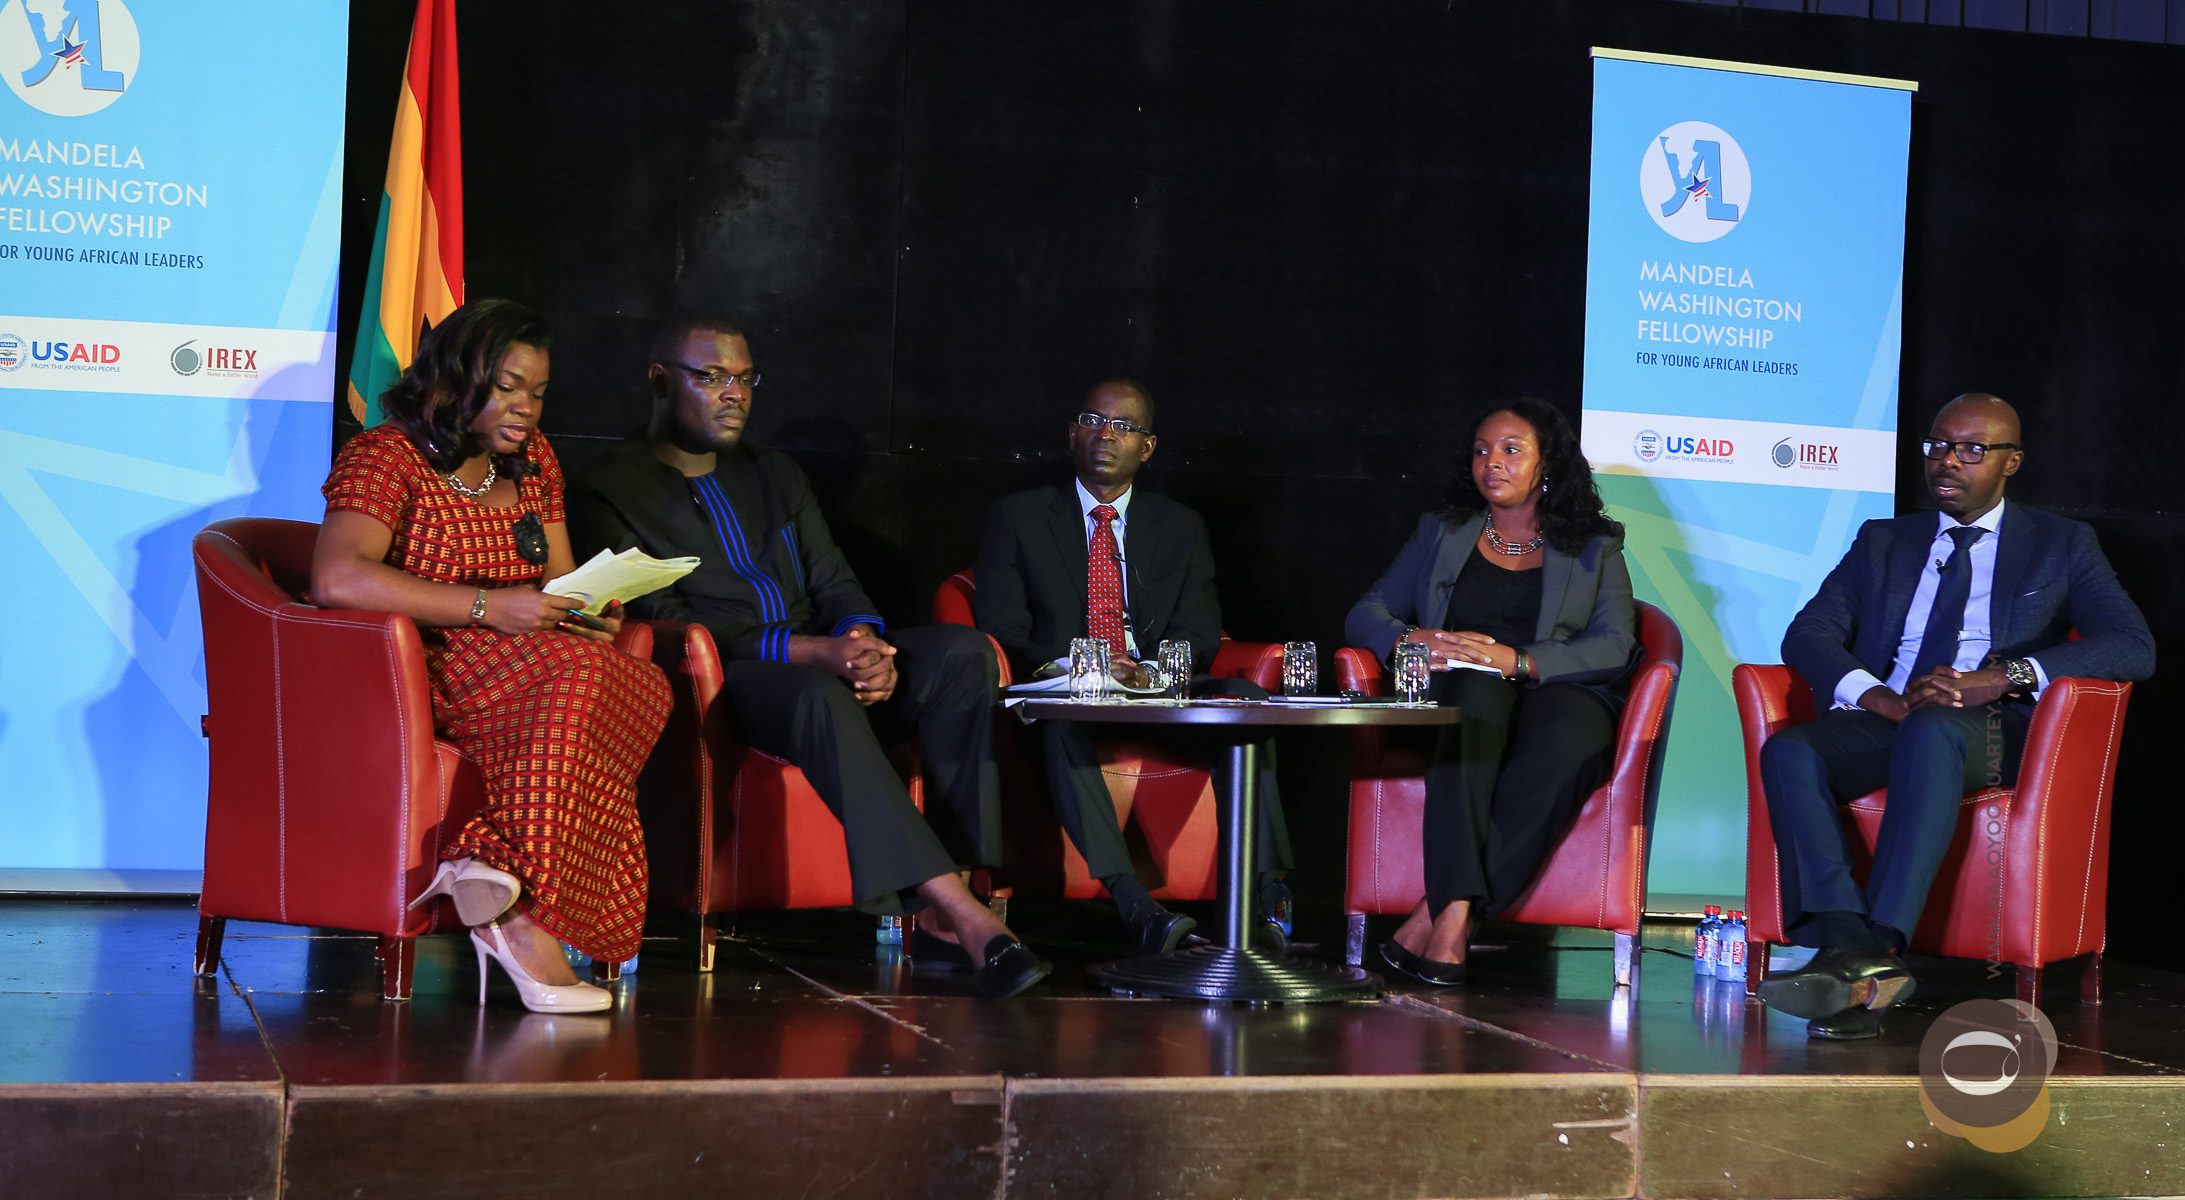 The panel on The Future of Africa